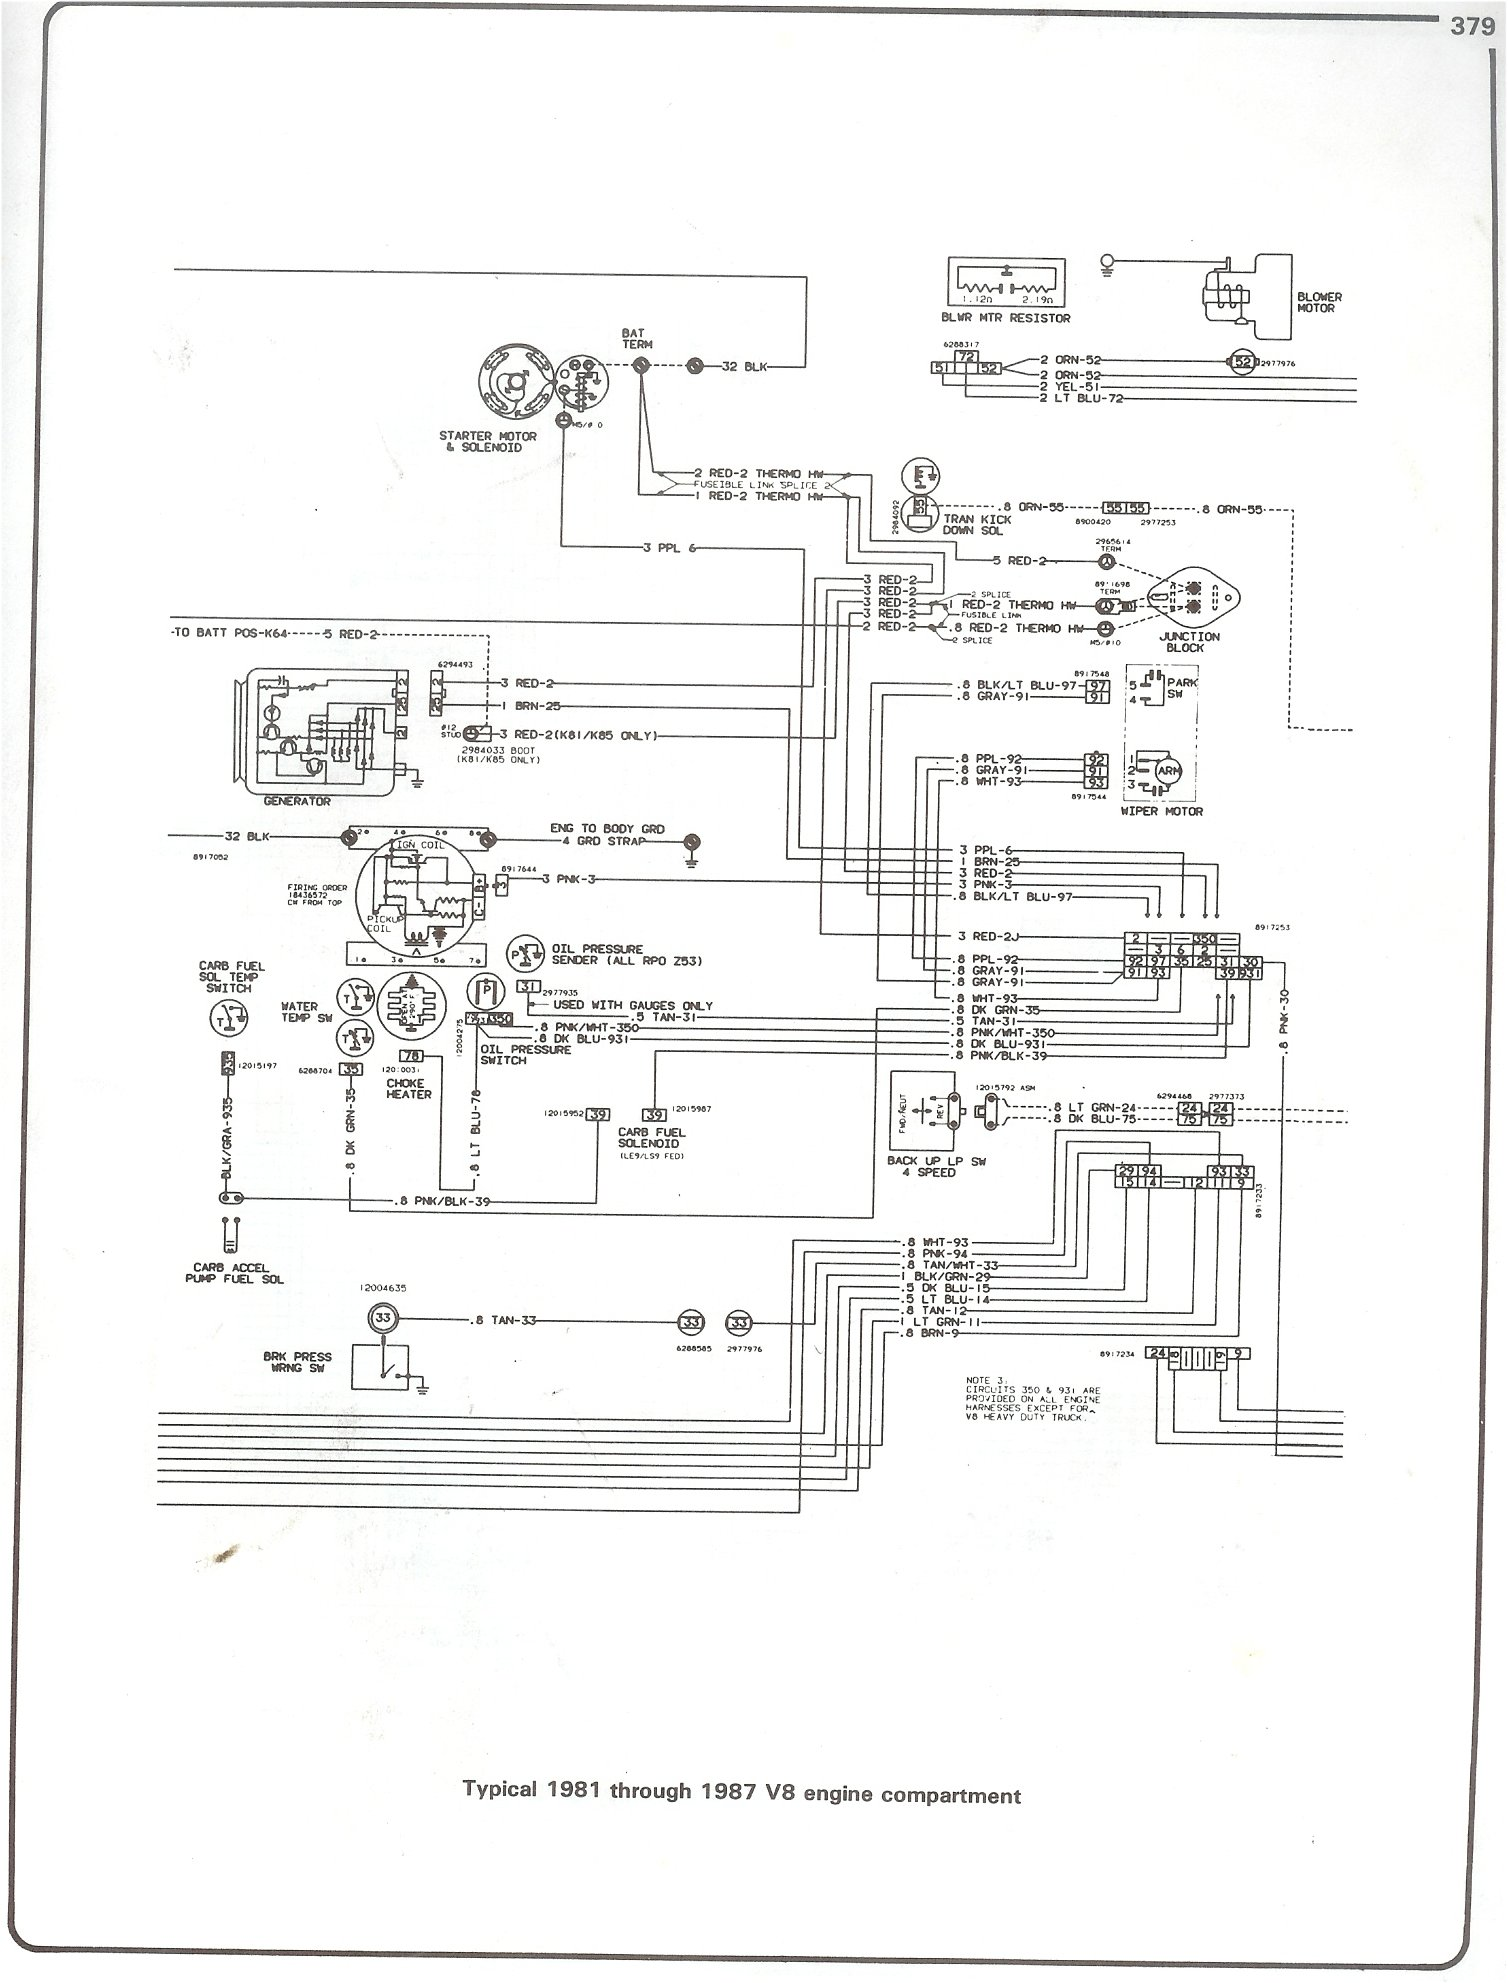 1987 gmc sierra wiring diagram basic wiring diagram u2022 rh dev spokeapartments com